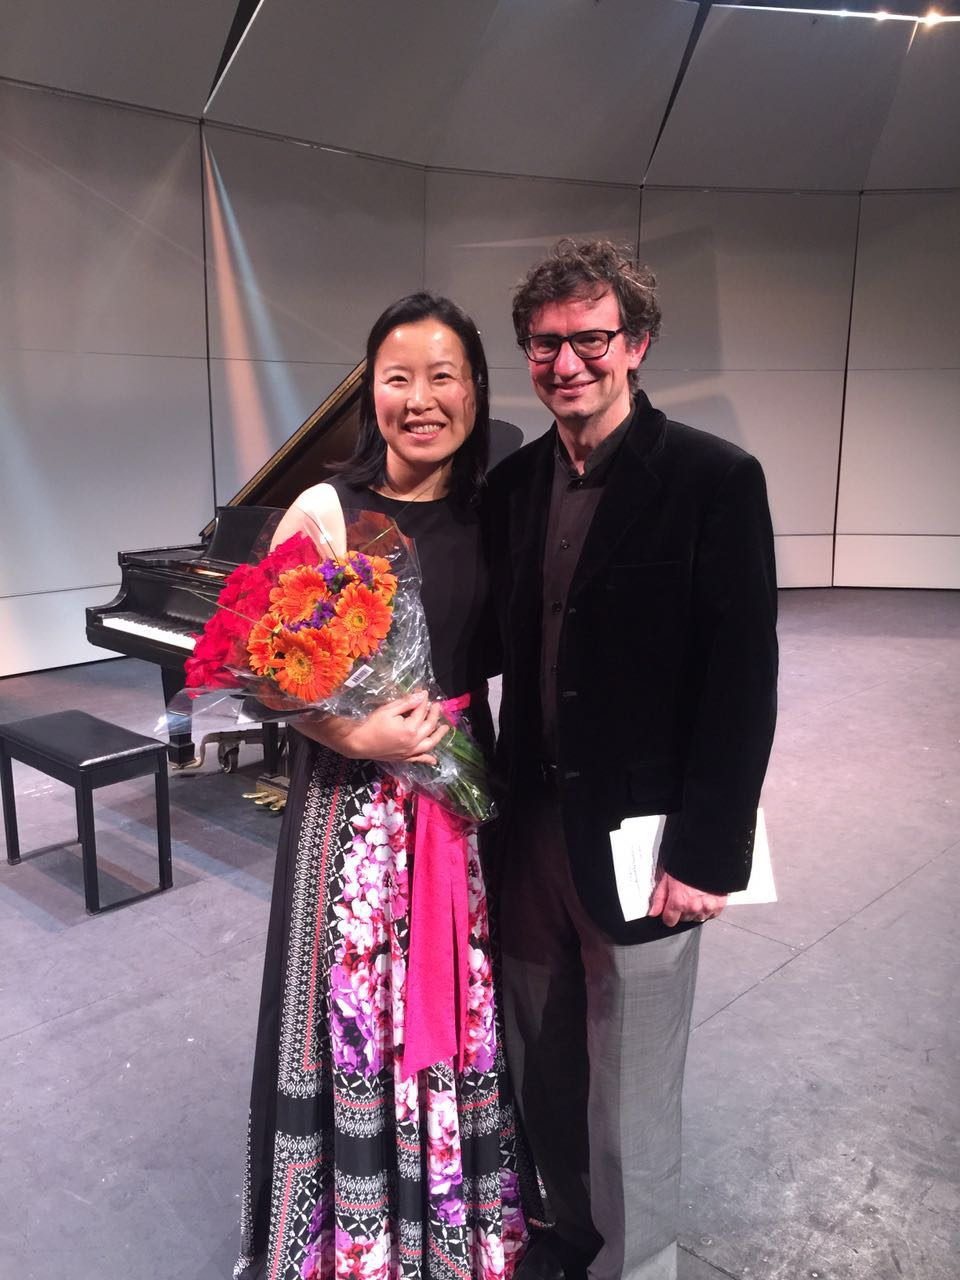 with composer David Meckler.